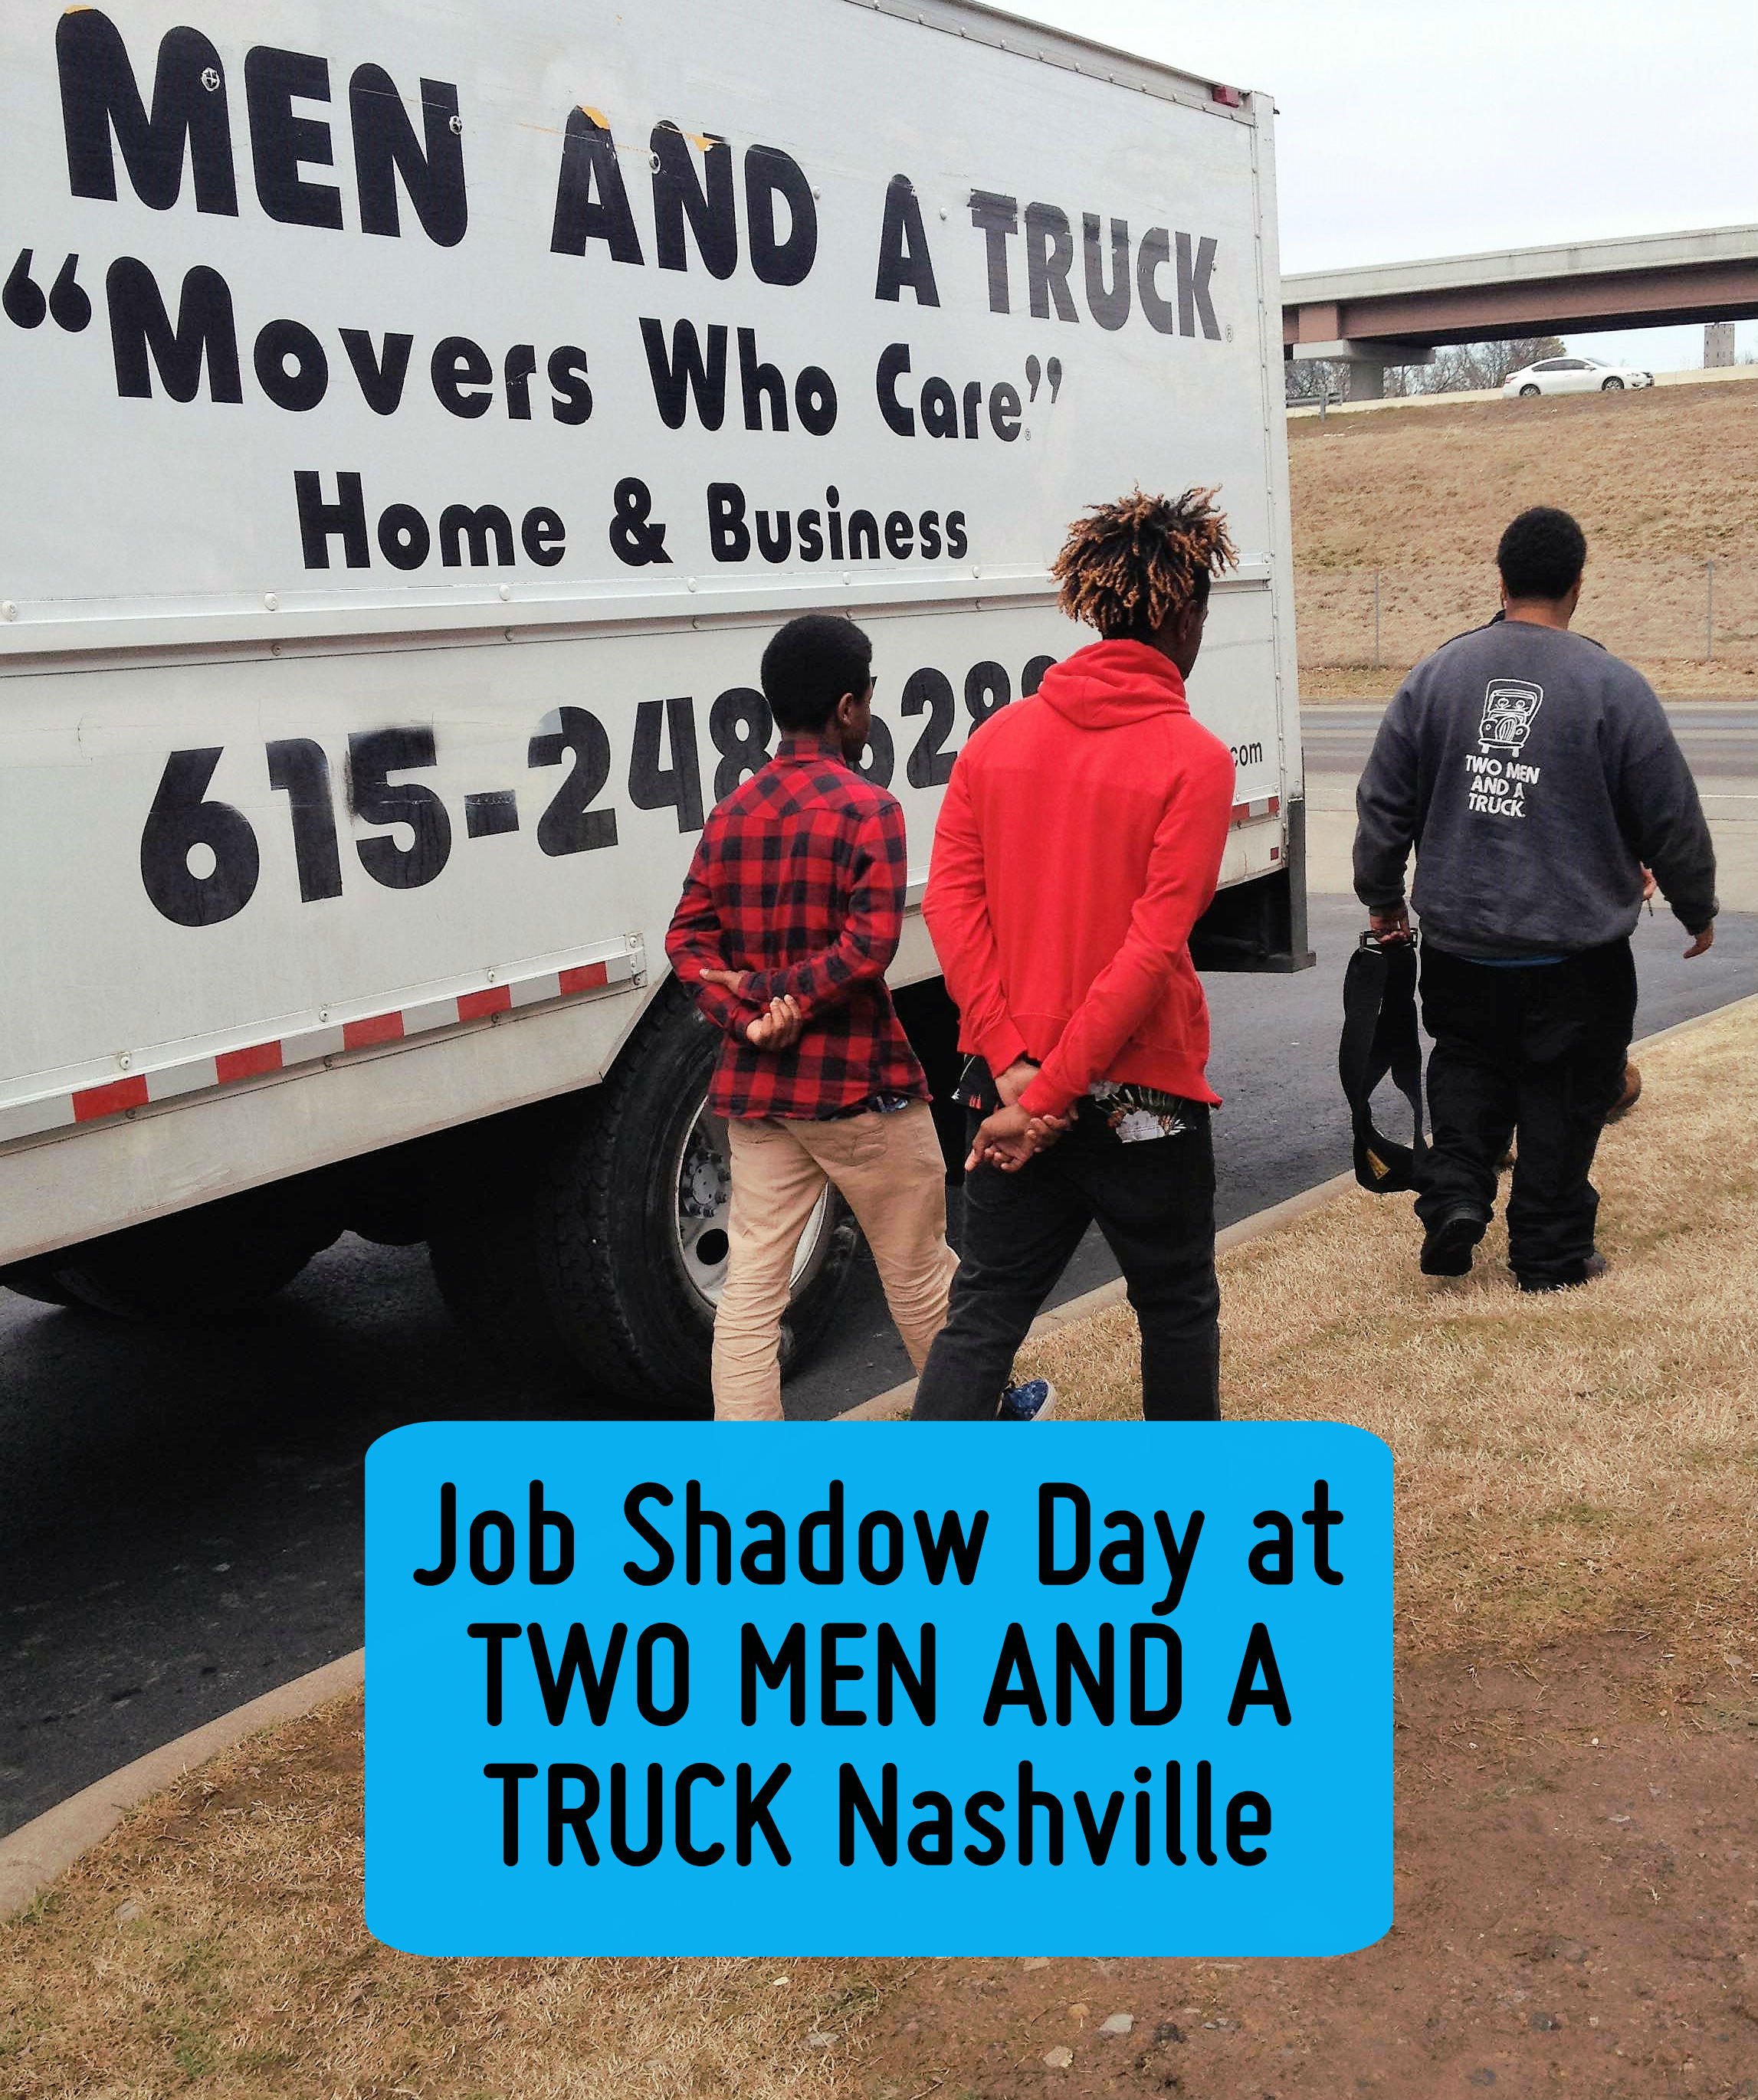 Job Shadow Day at TWO MEN AND A TRUCK Nashville